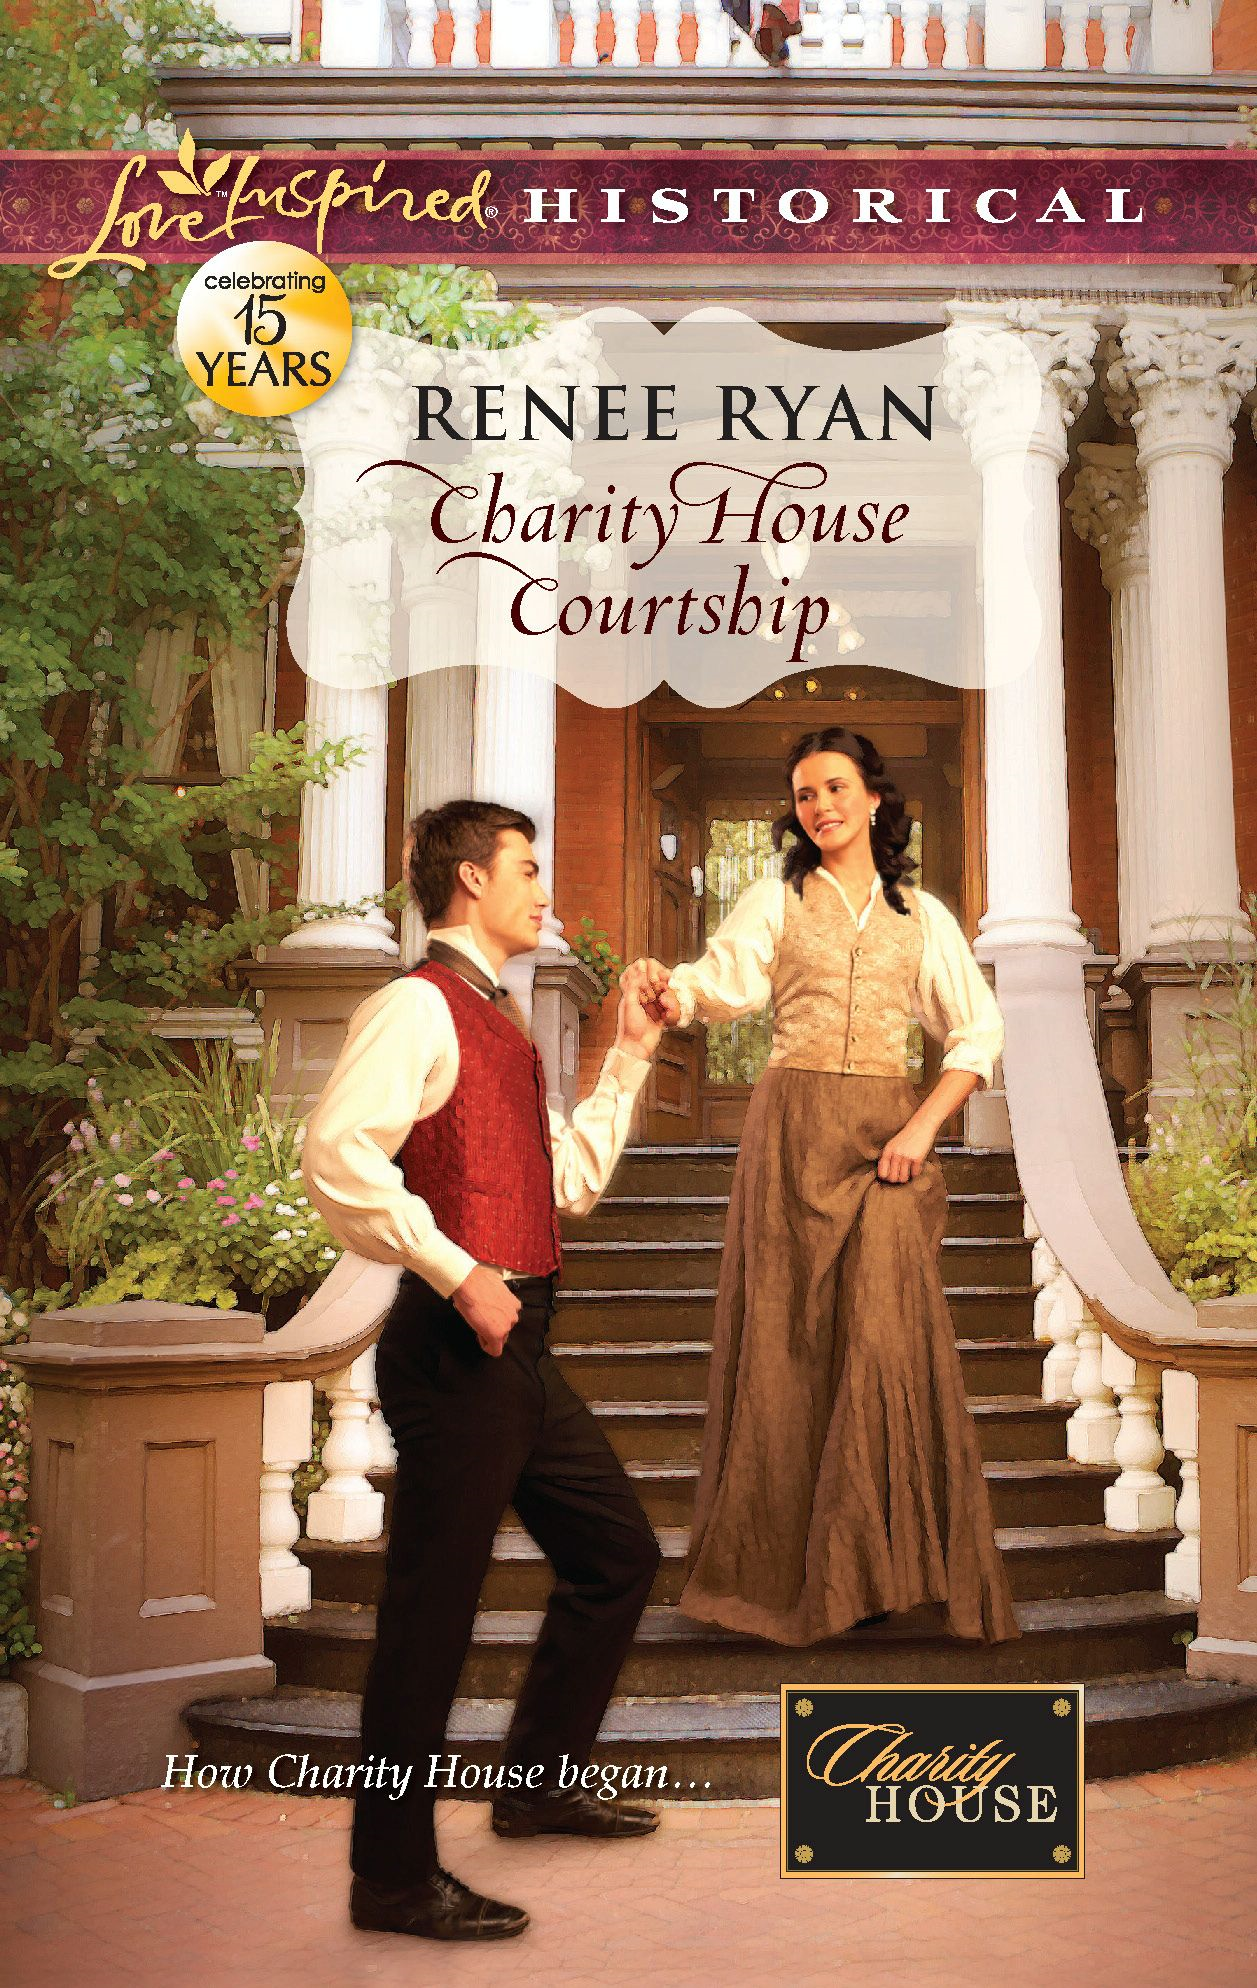 Charity House Courtship By: Renee Ryan